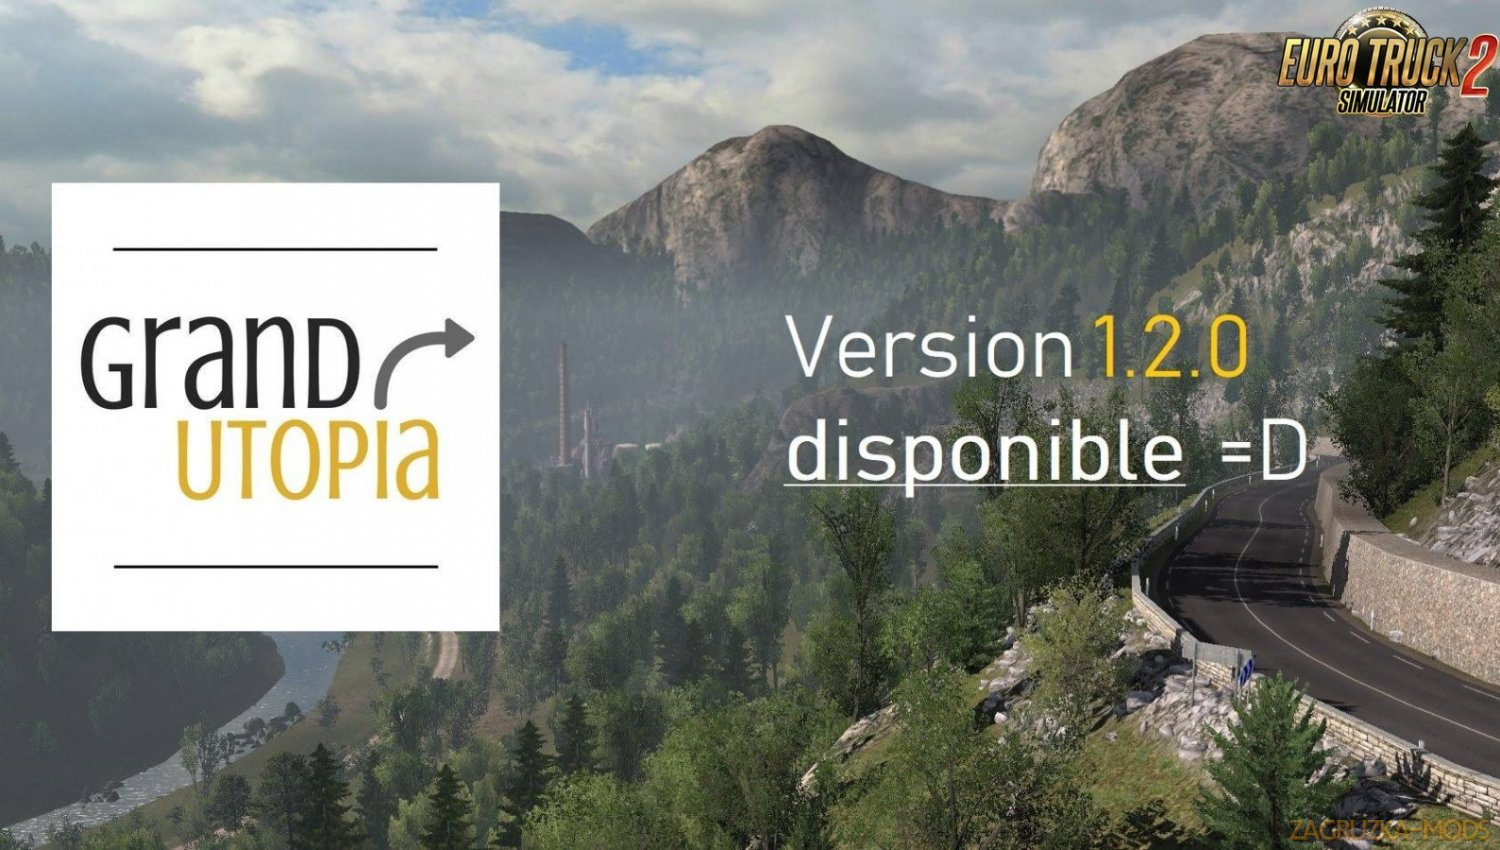 Grand Utopia Map v1.2.0 for Ets2